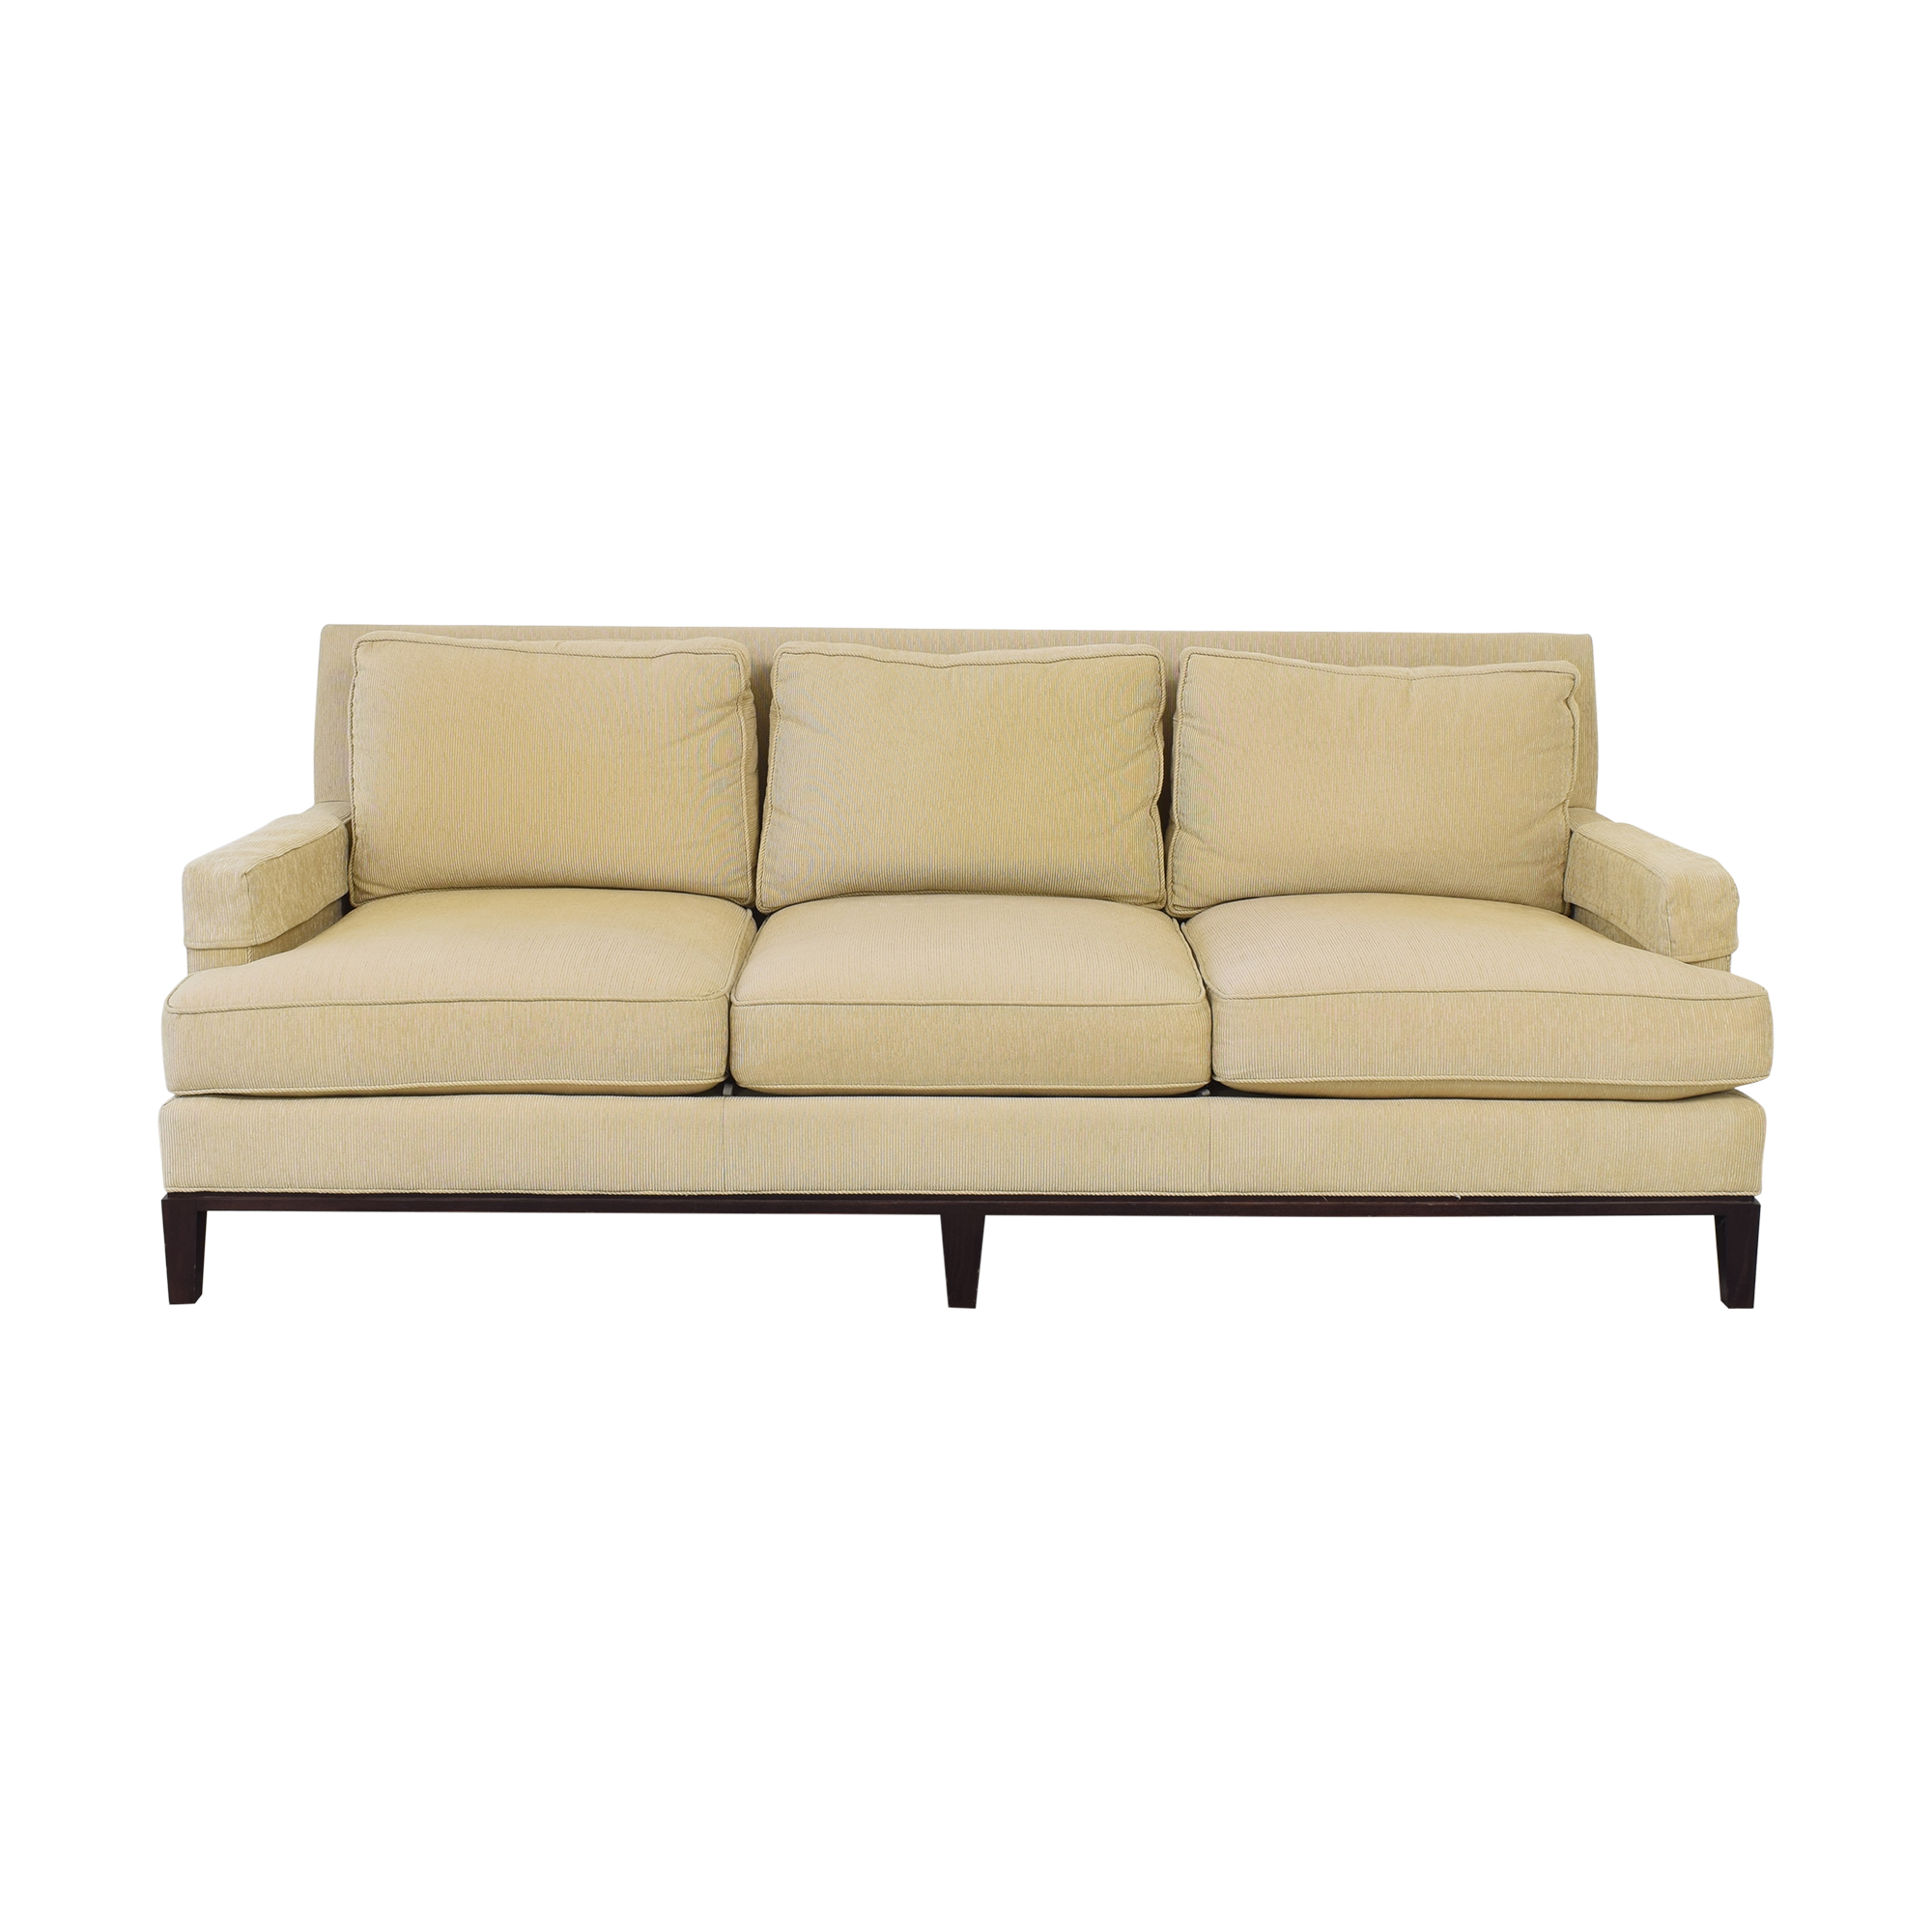 Vanguard Furniture Vanguard Furniture Sterling Sofa Classic Sofas